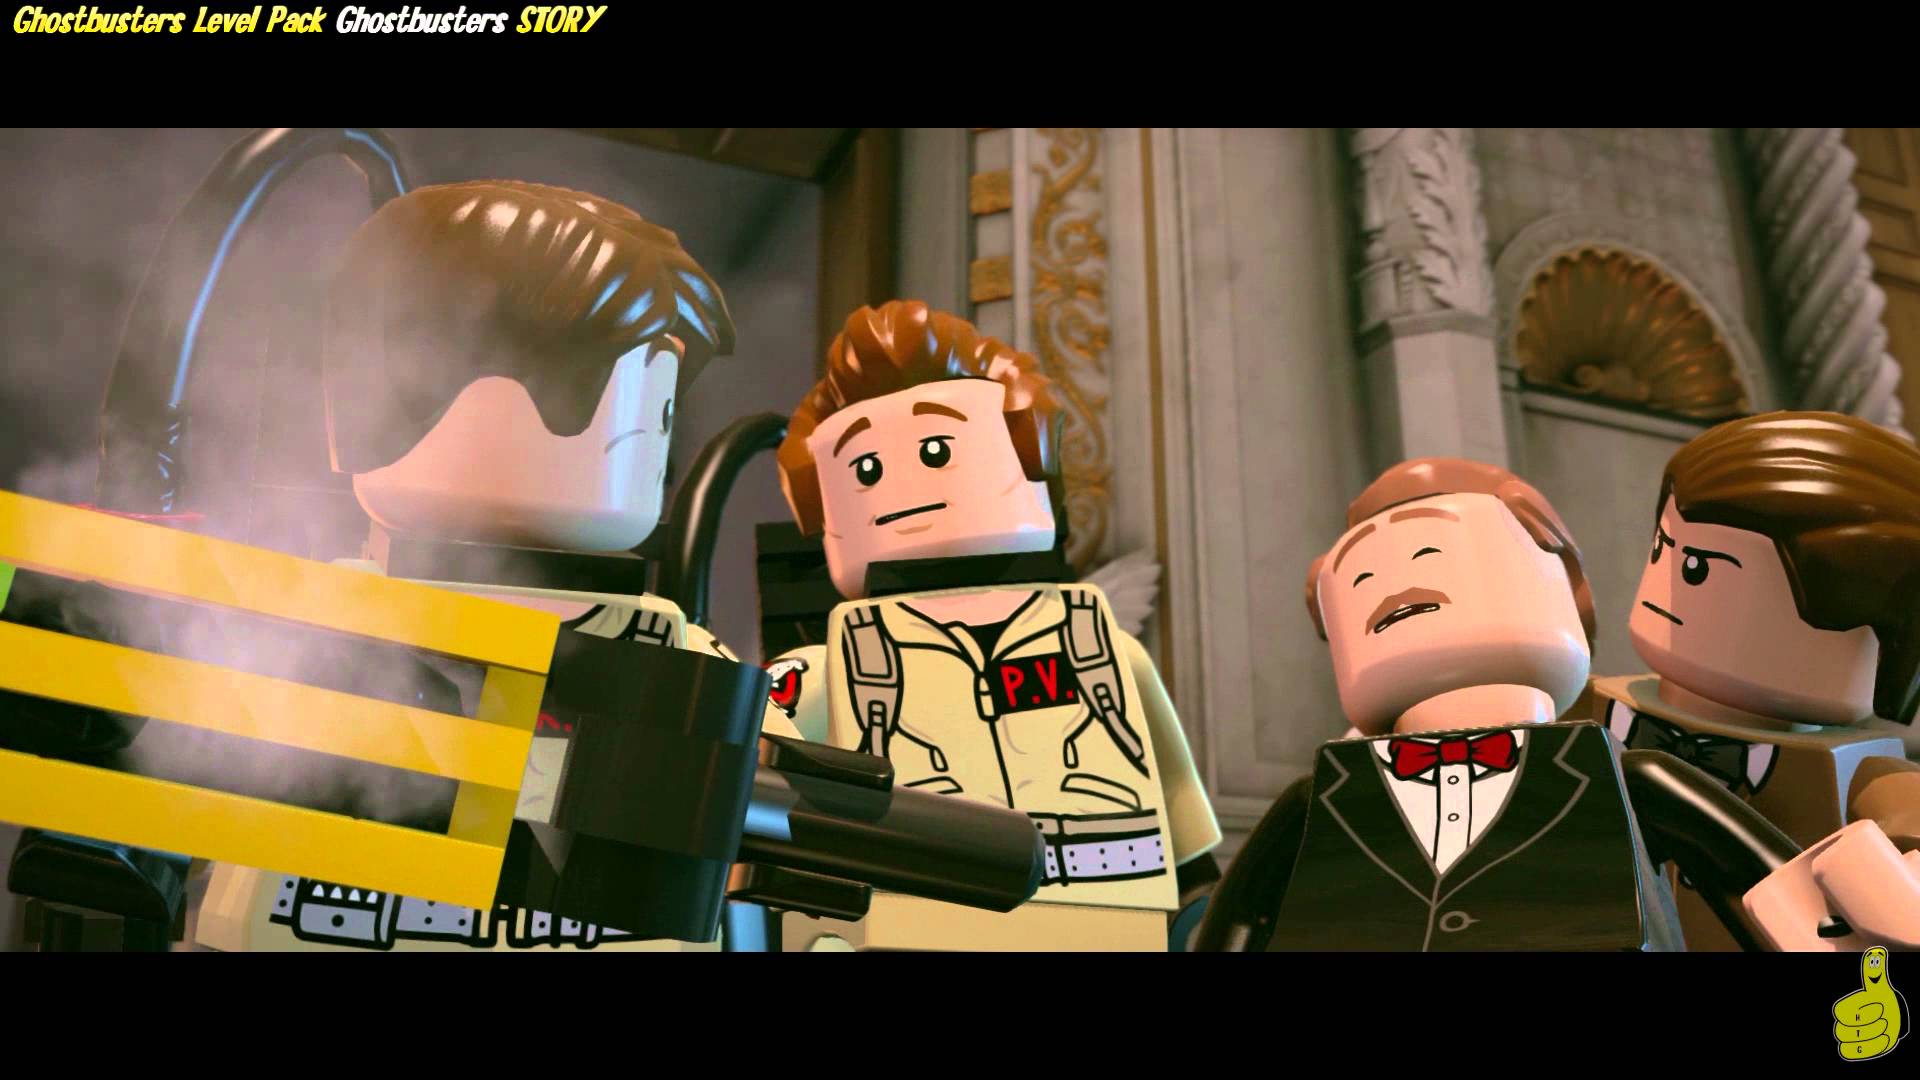 Lego Dimensions: Ghostbusters Level Pack STORY/I ain't Afraid of No Ghost Trophy/Achievement – HTG